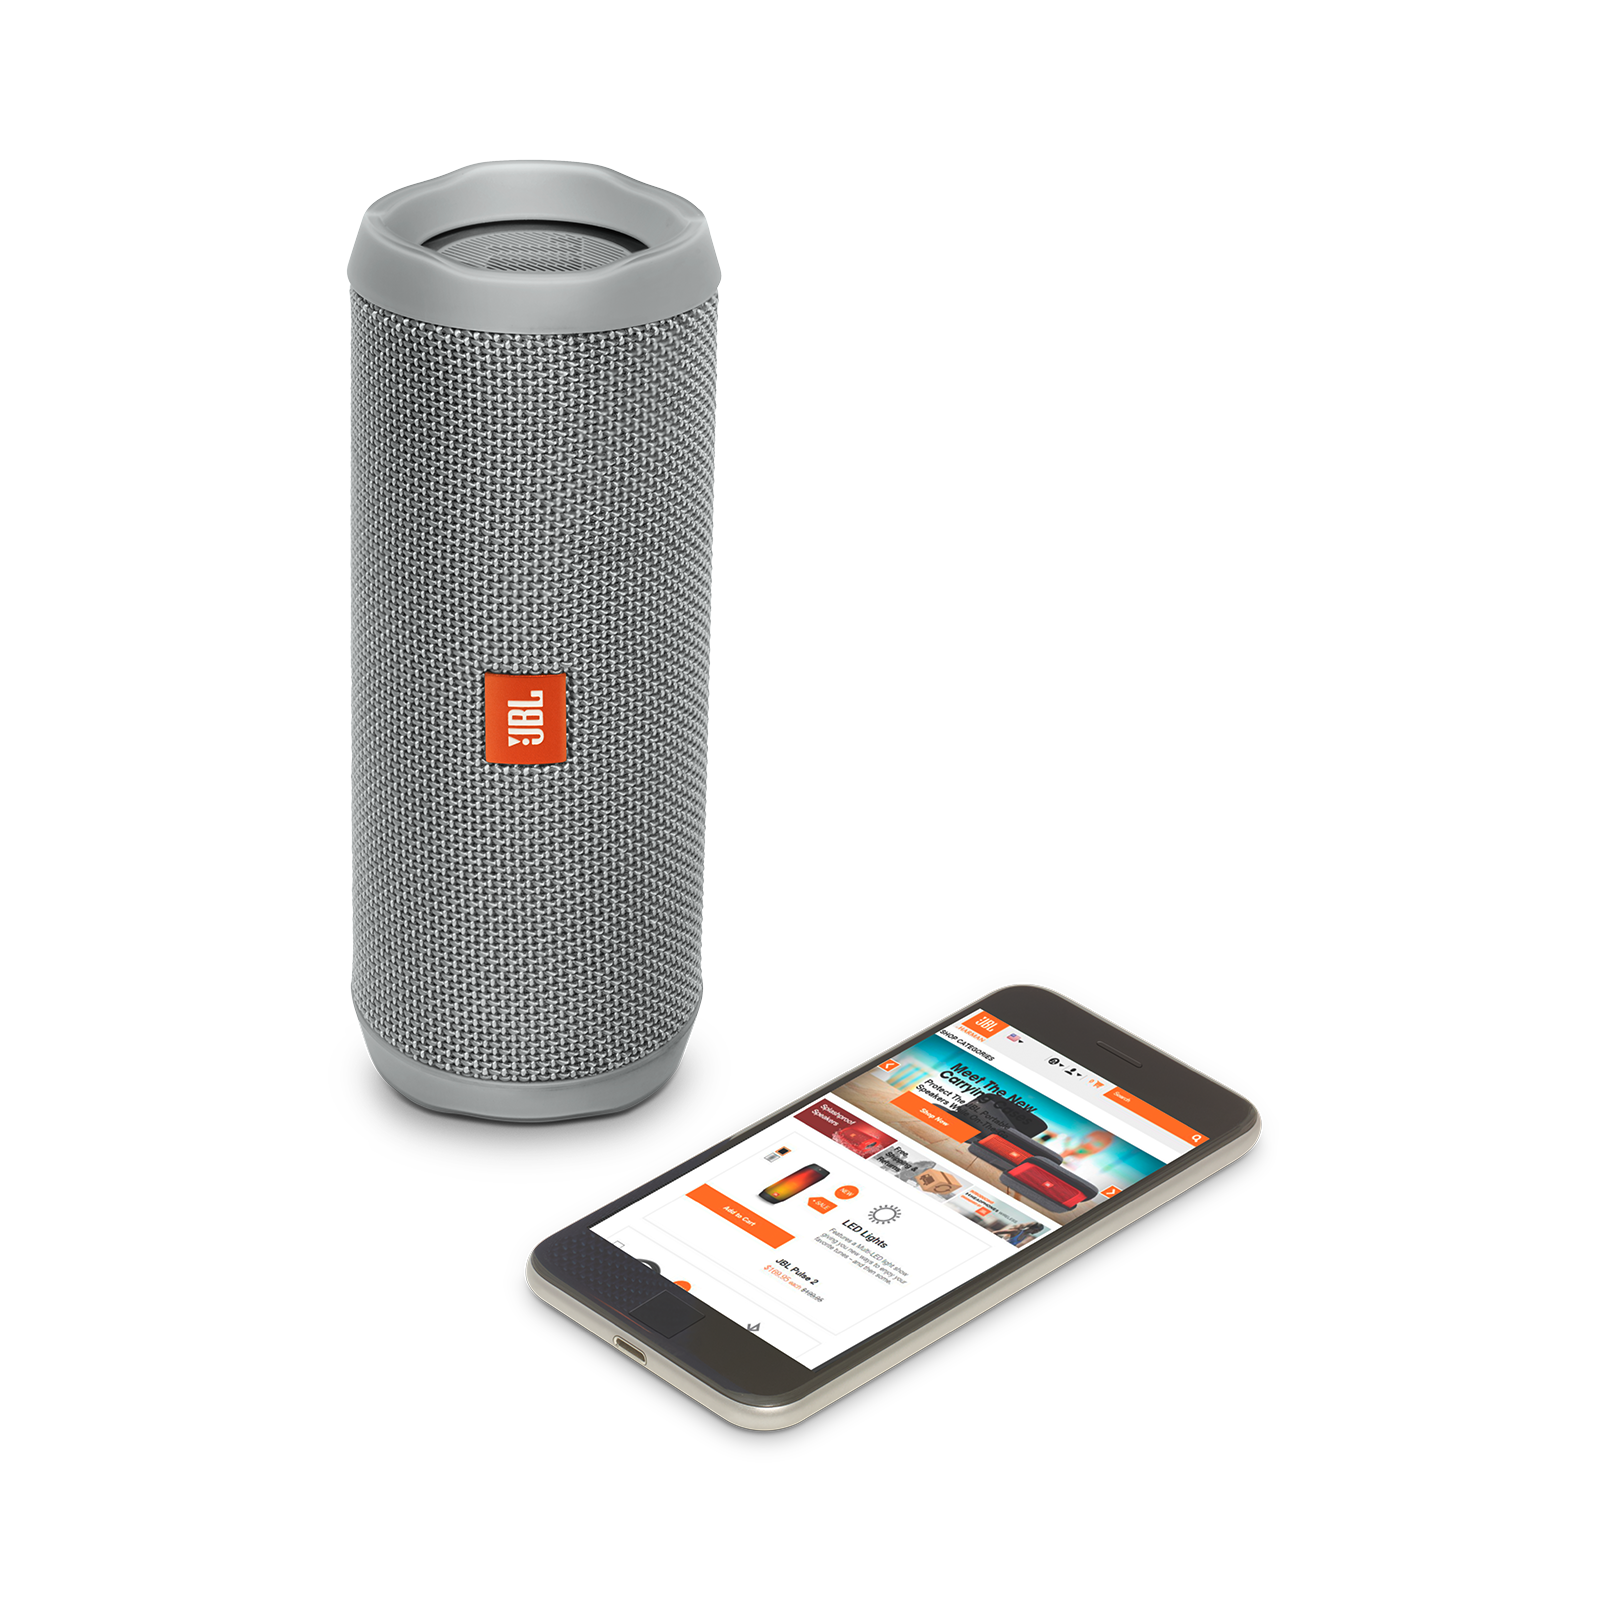 JBL Flip 4 - Grey - A full-featured waterproof portable Bluetooth speaker with surprisingly powerful sound. - Detailshot 2